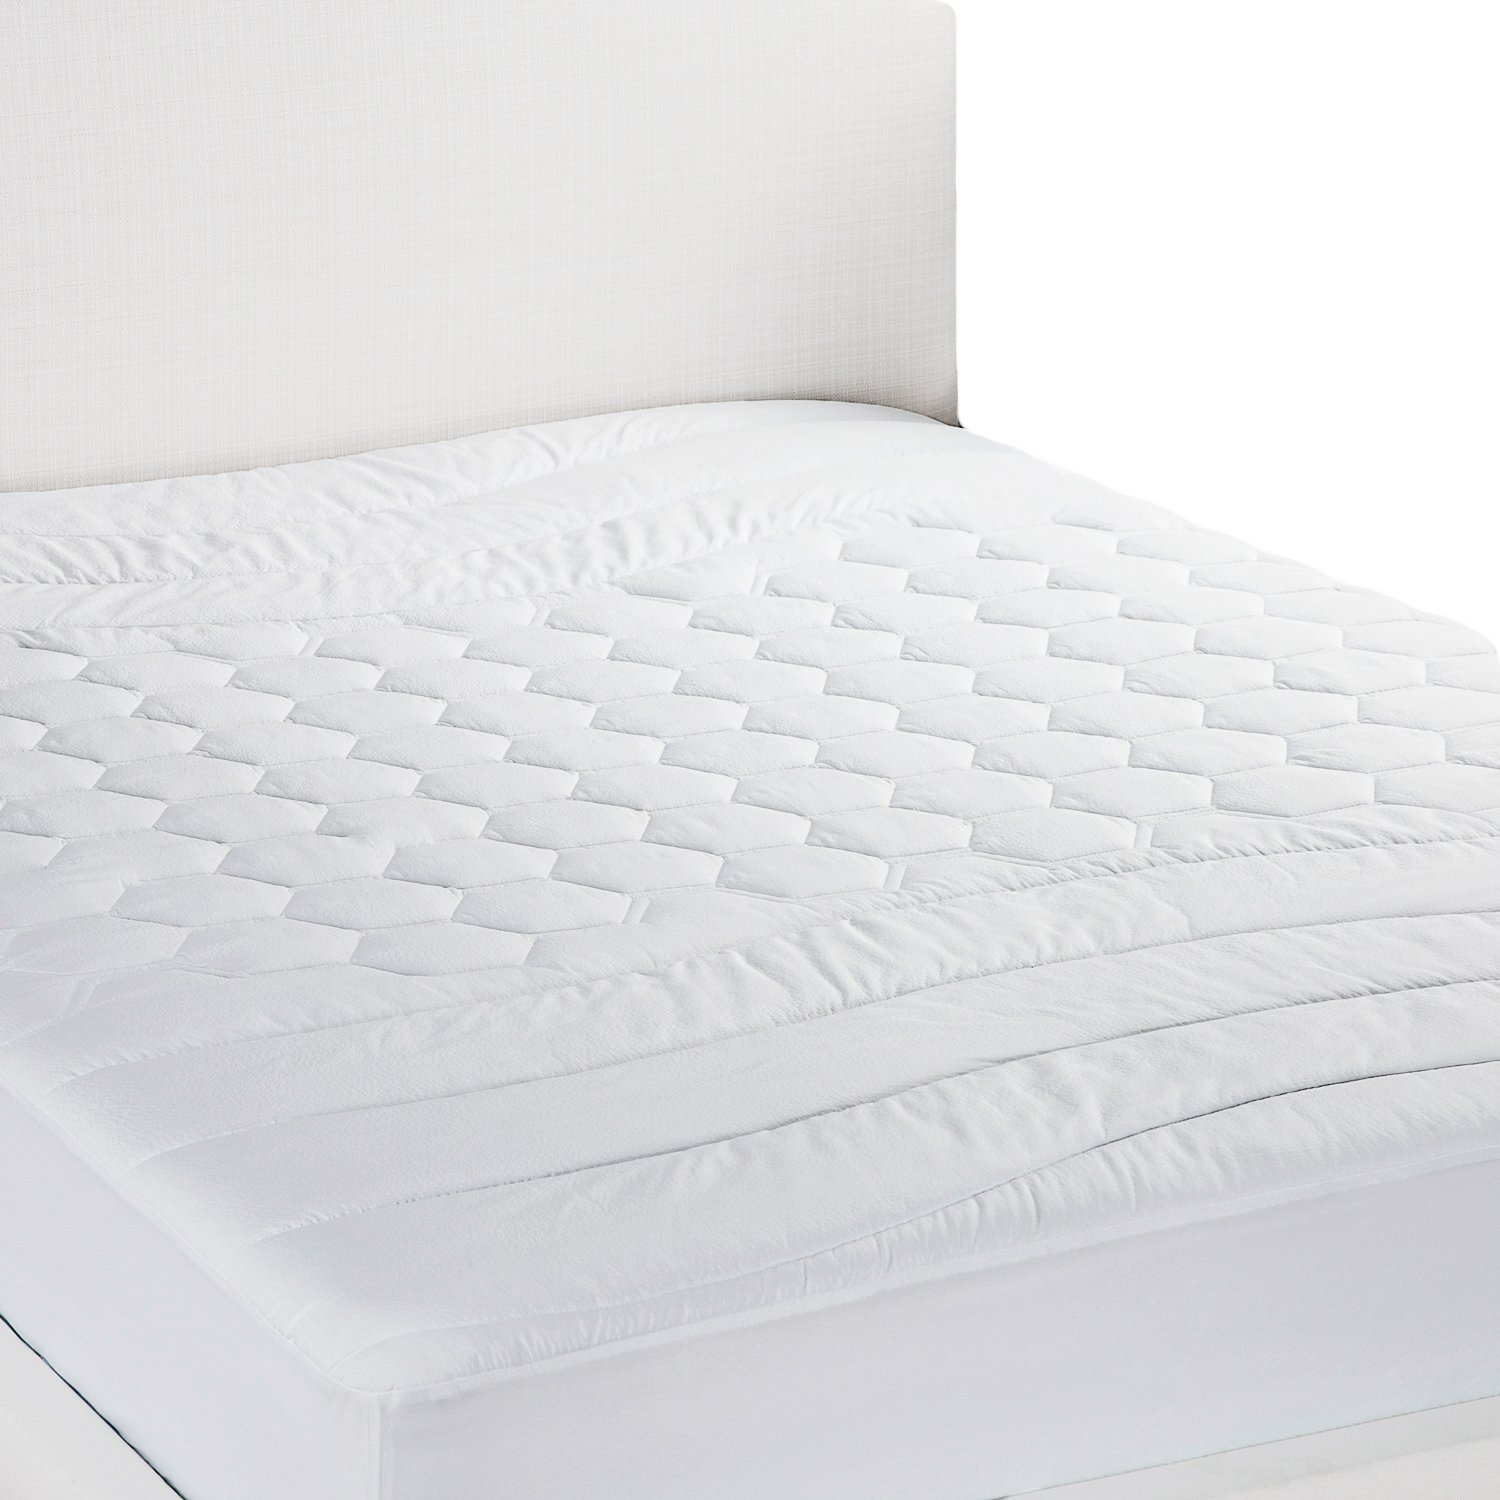 Bedsure Quilted Mattress Pad Protectors Double(135 x 190cm)